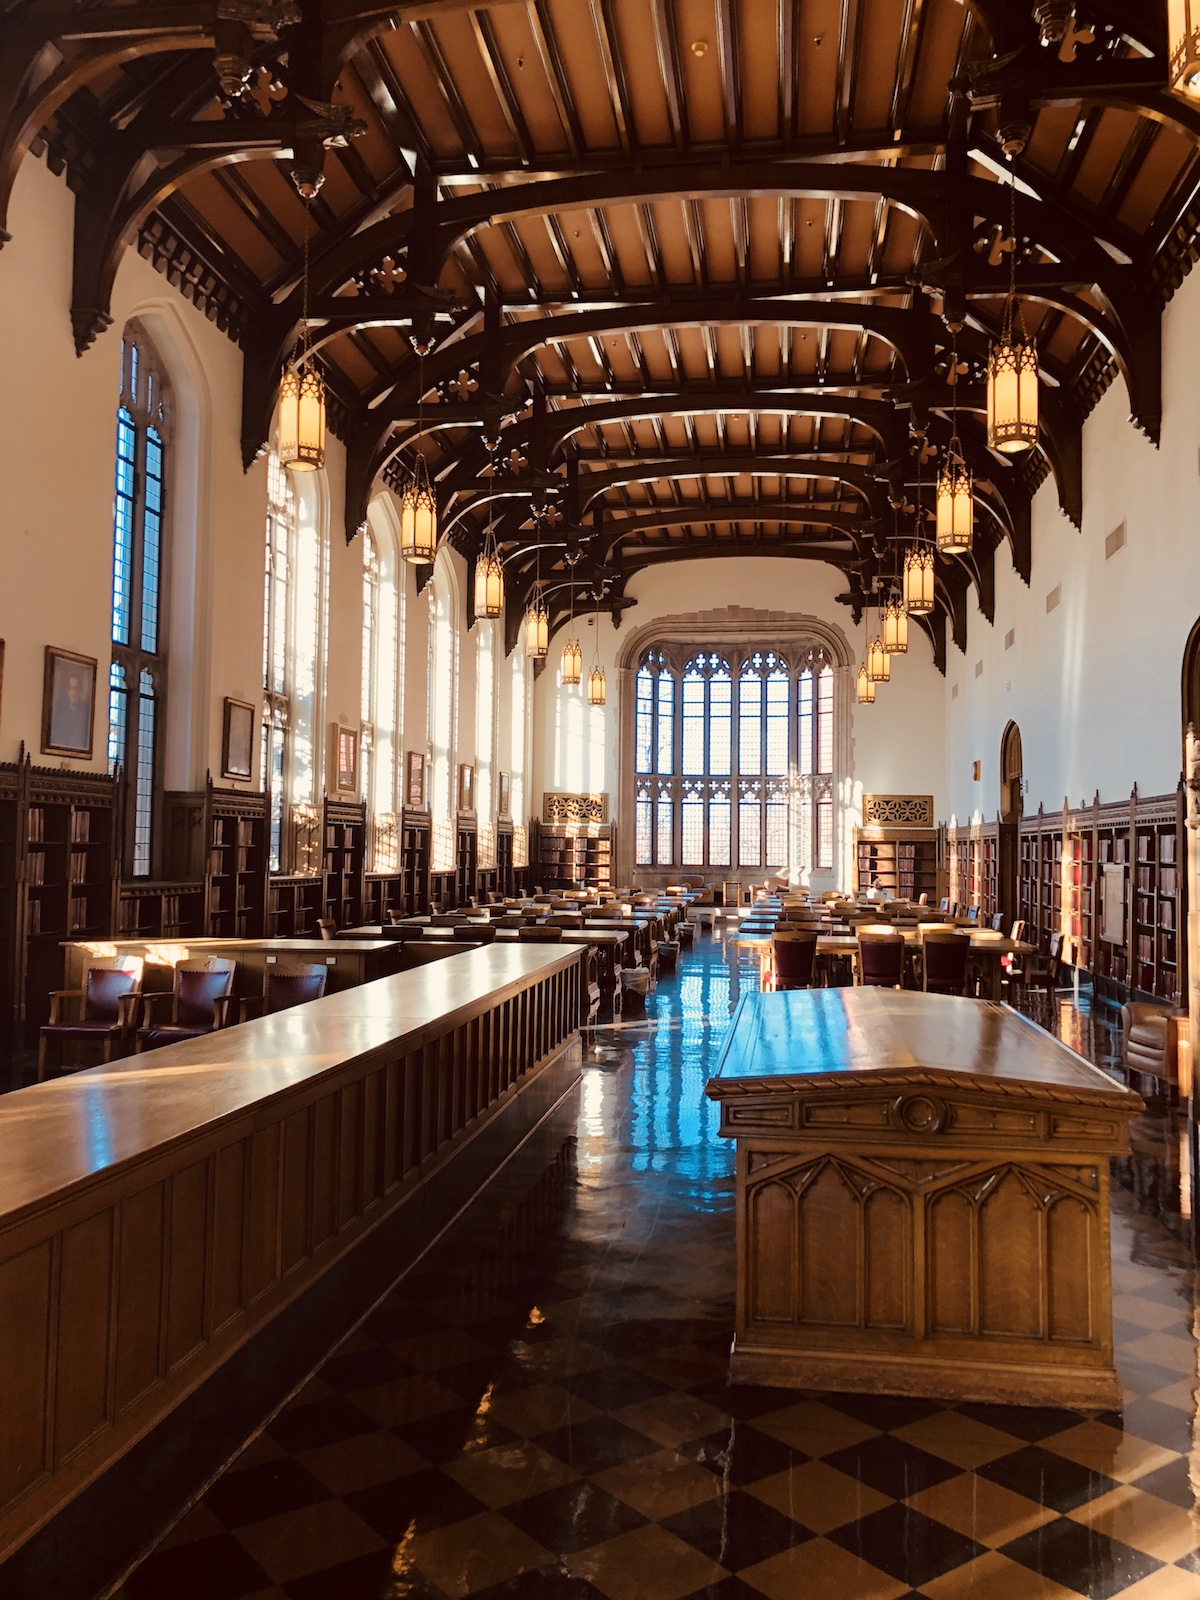 Bizzell Library's Reading Room at the University of Oklahoma in Norman, Oklahoma.